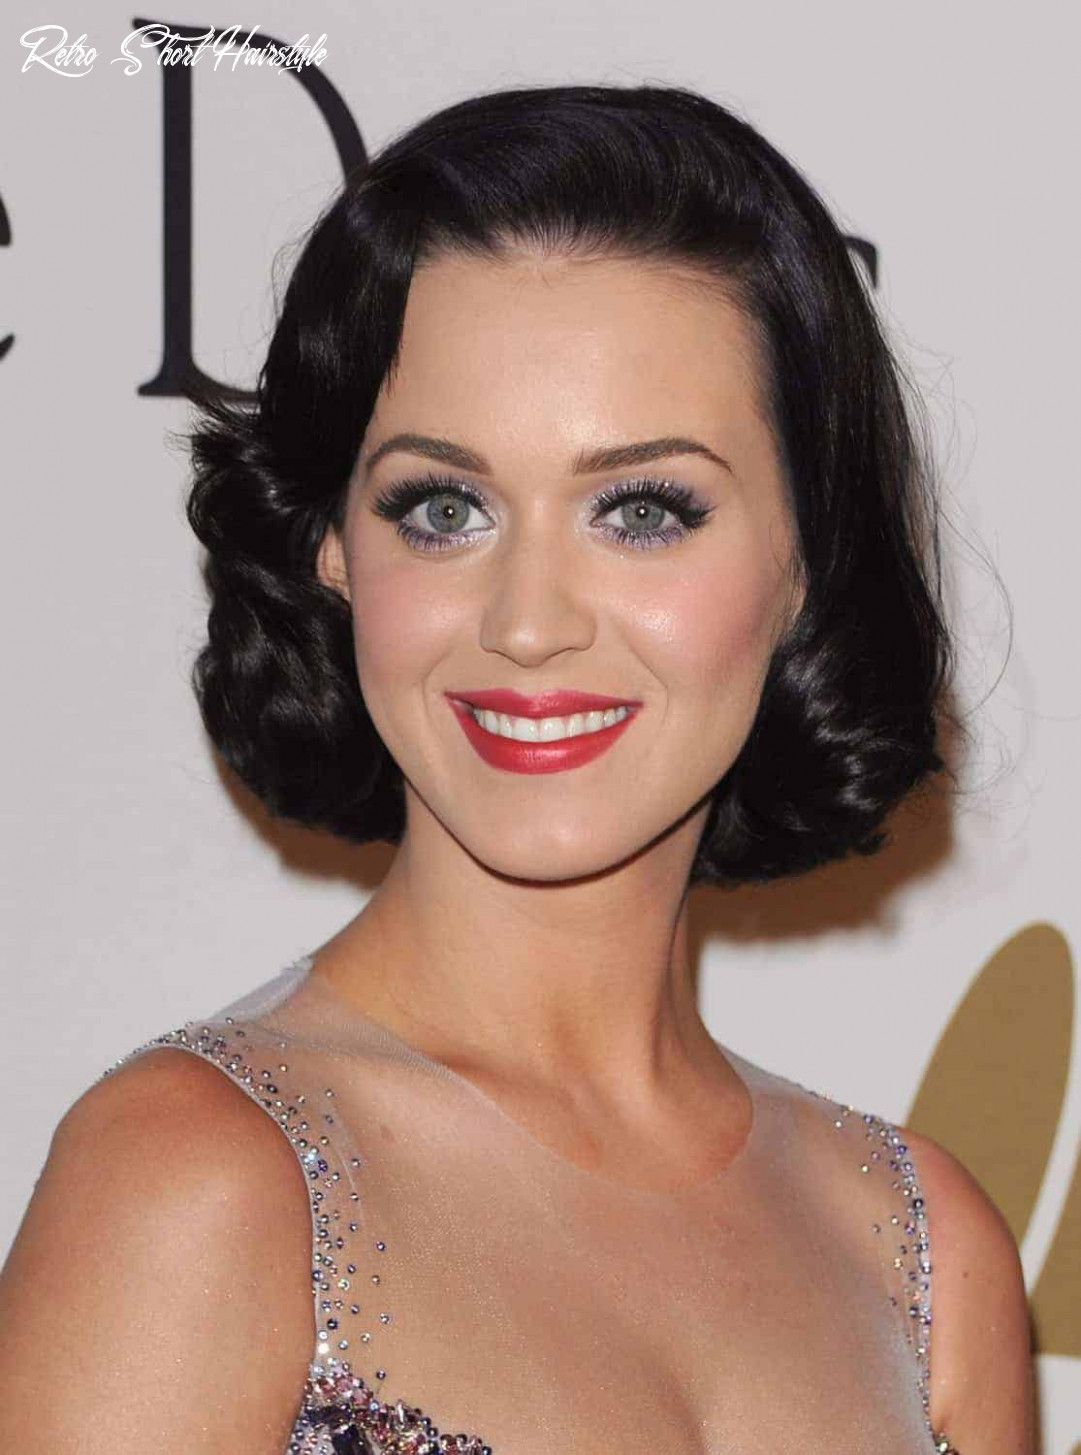 Retro hairstyles for beautiful short hair 8 - Womenstyle.com